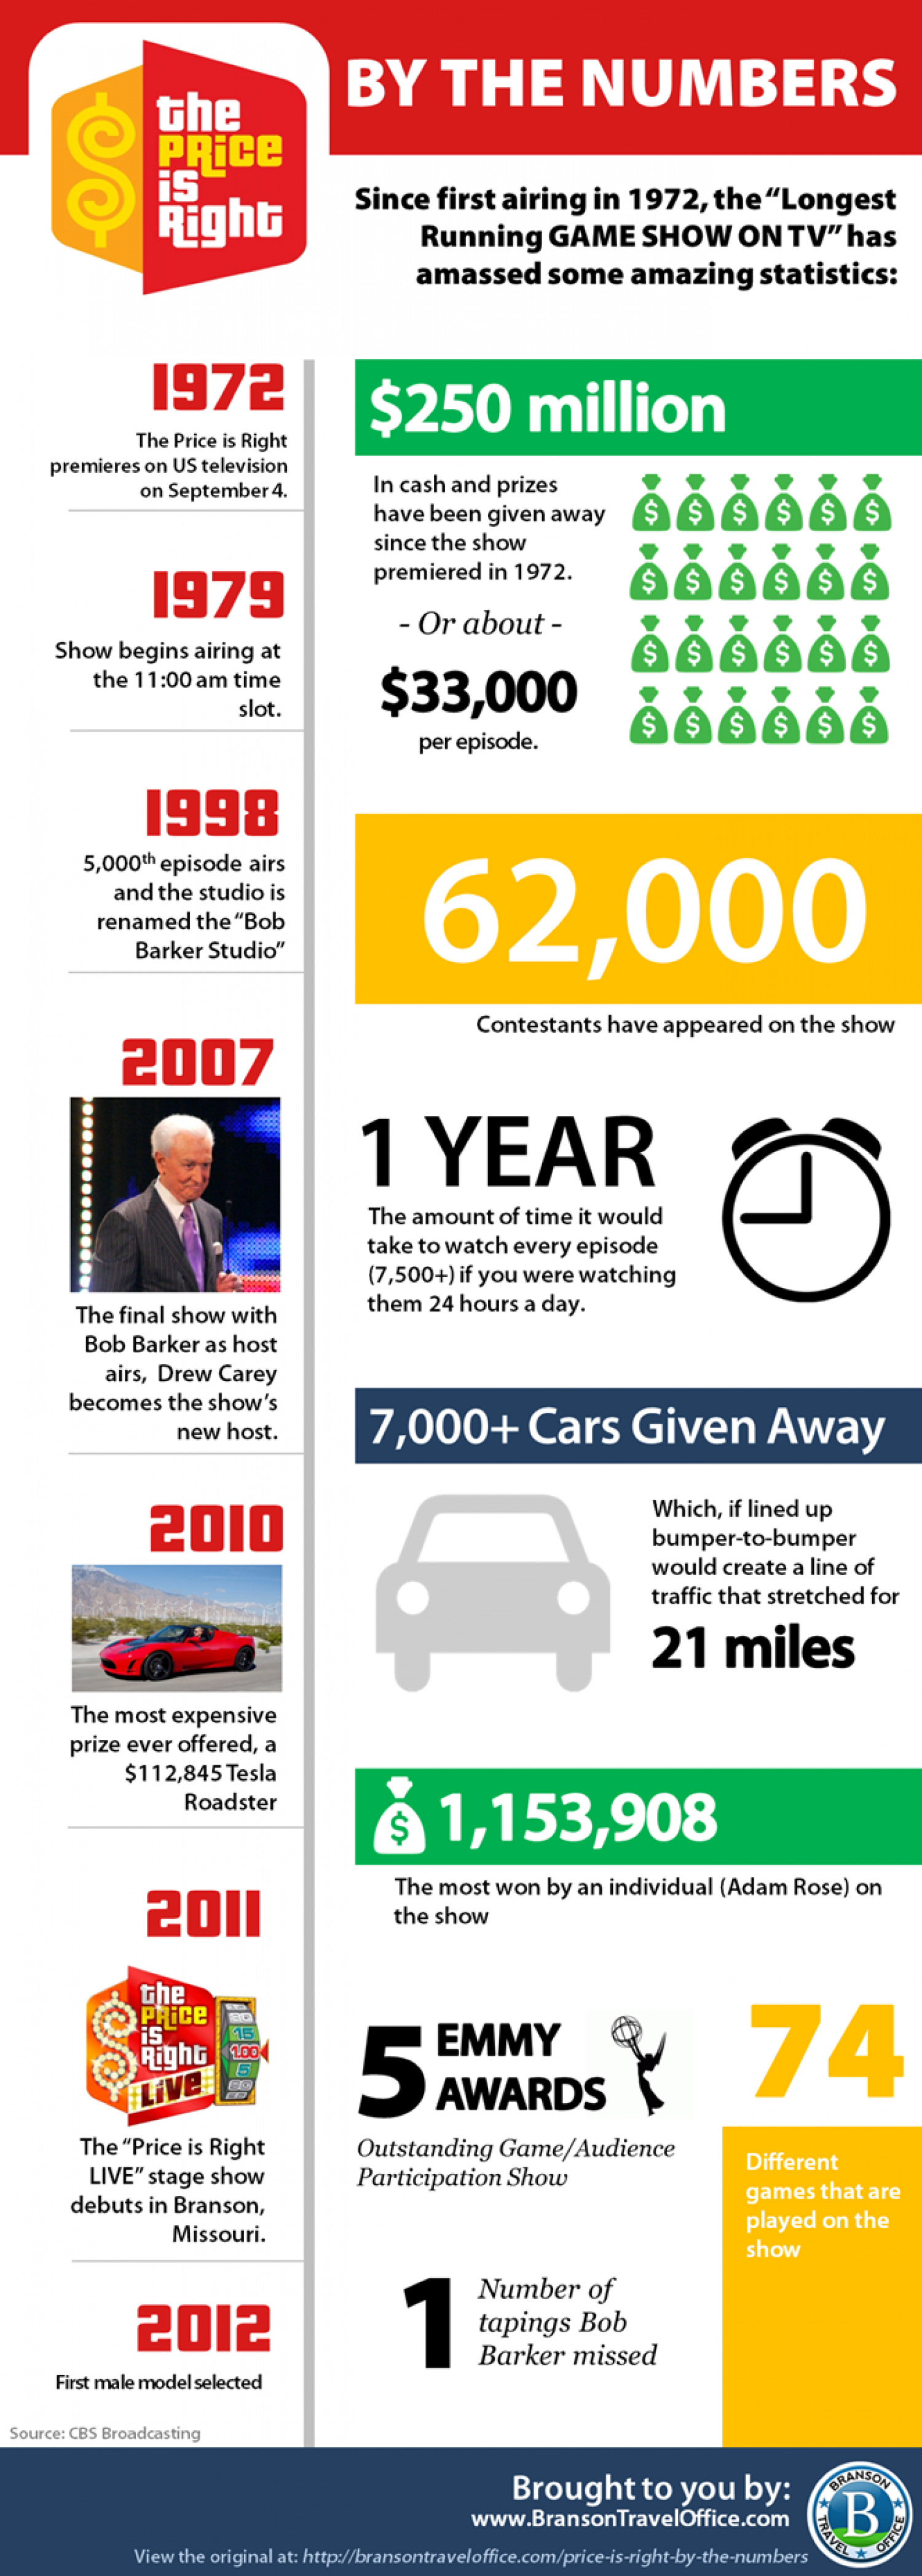 The Price is Right: By the Numbers Infographic